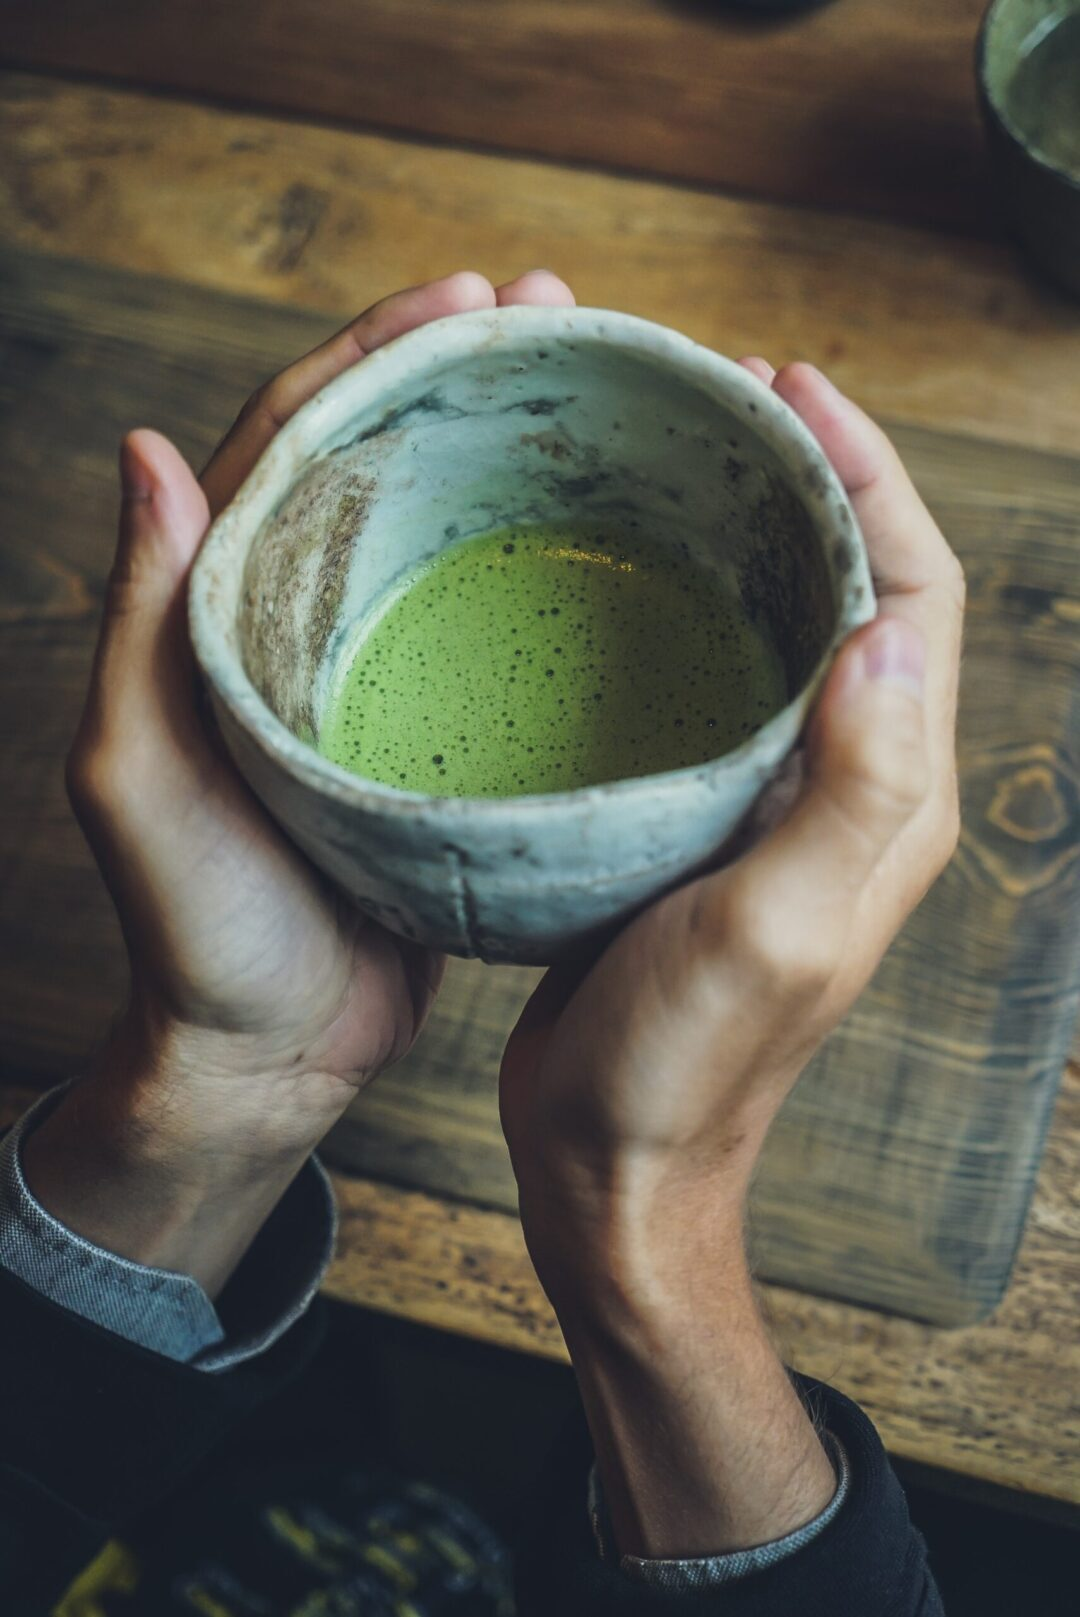 Drinking Matcha out of a bowl